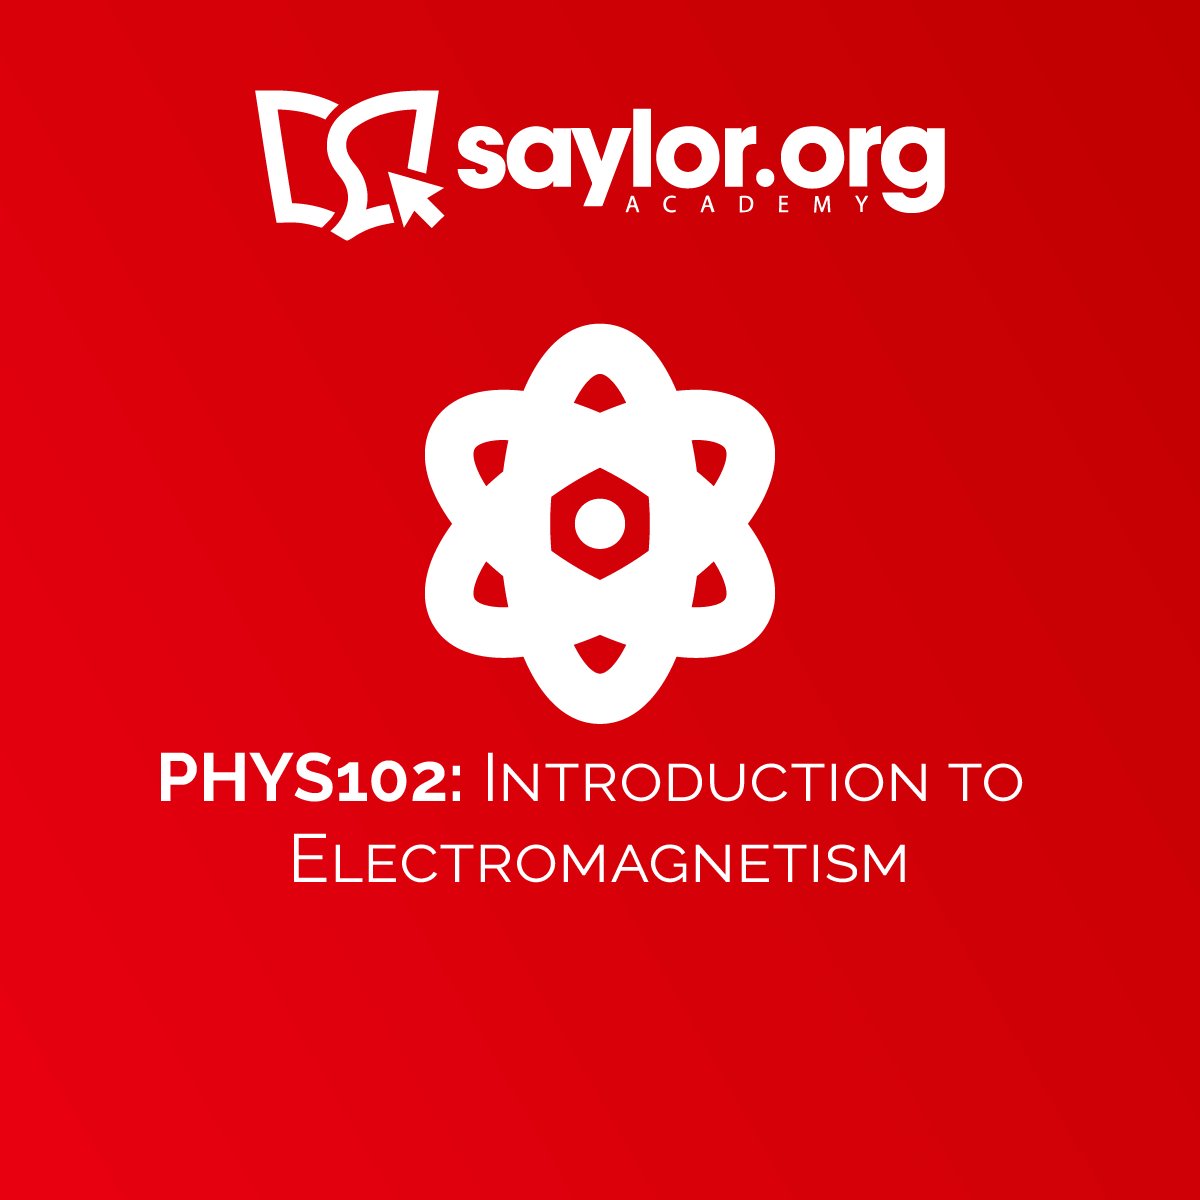 PHYS102: Introduction to Electromagnetism | Saylor Academy